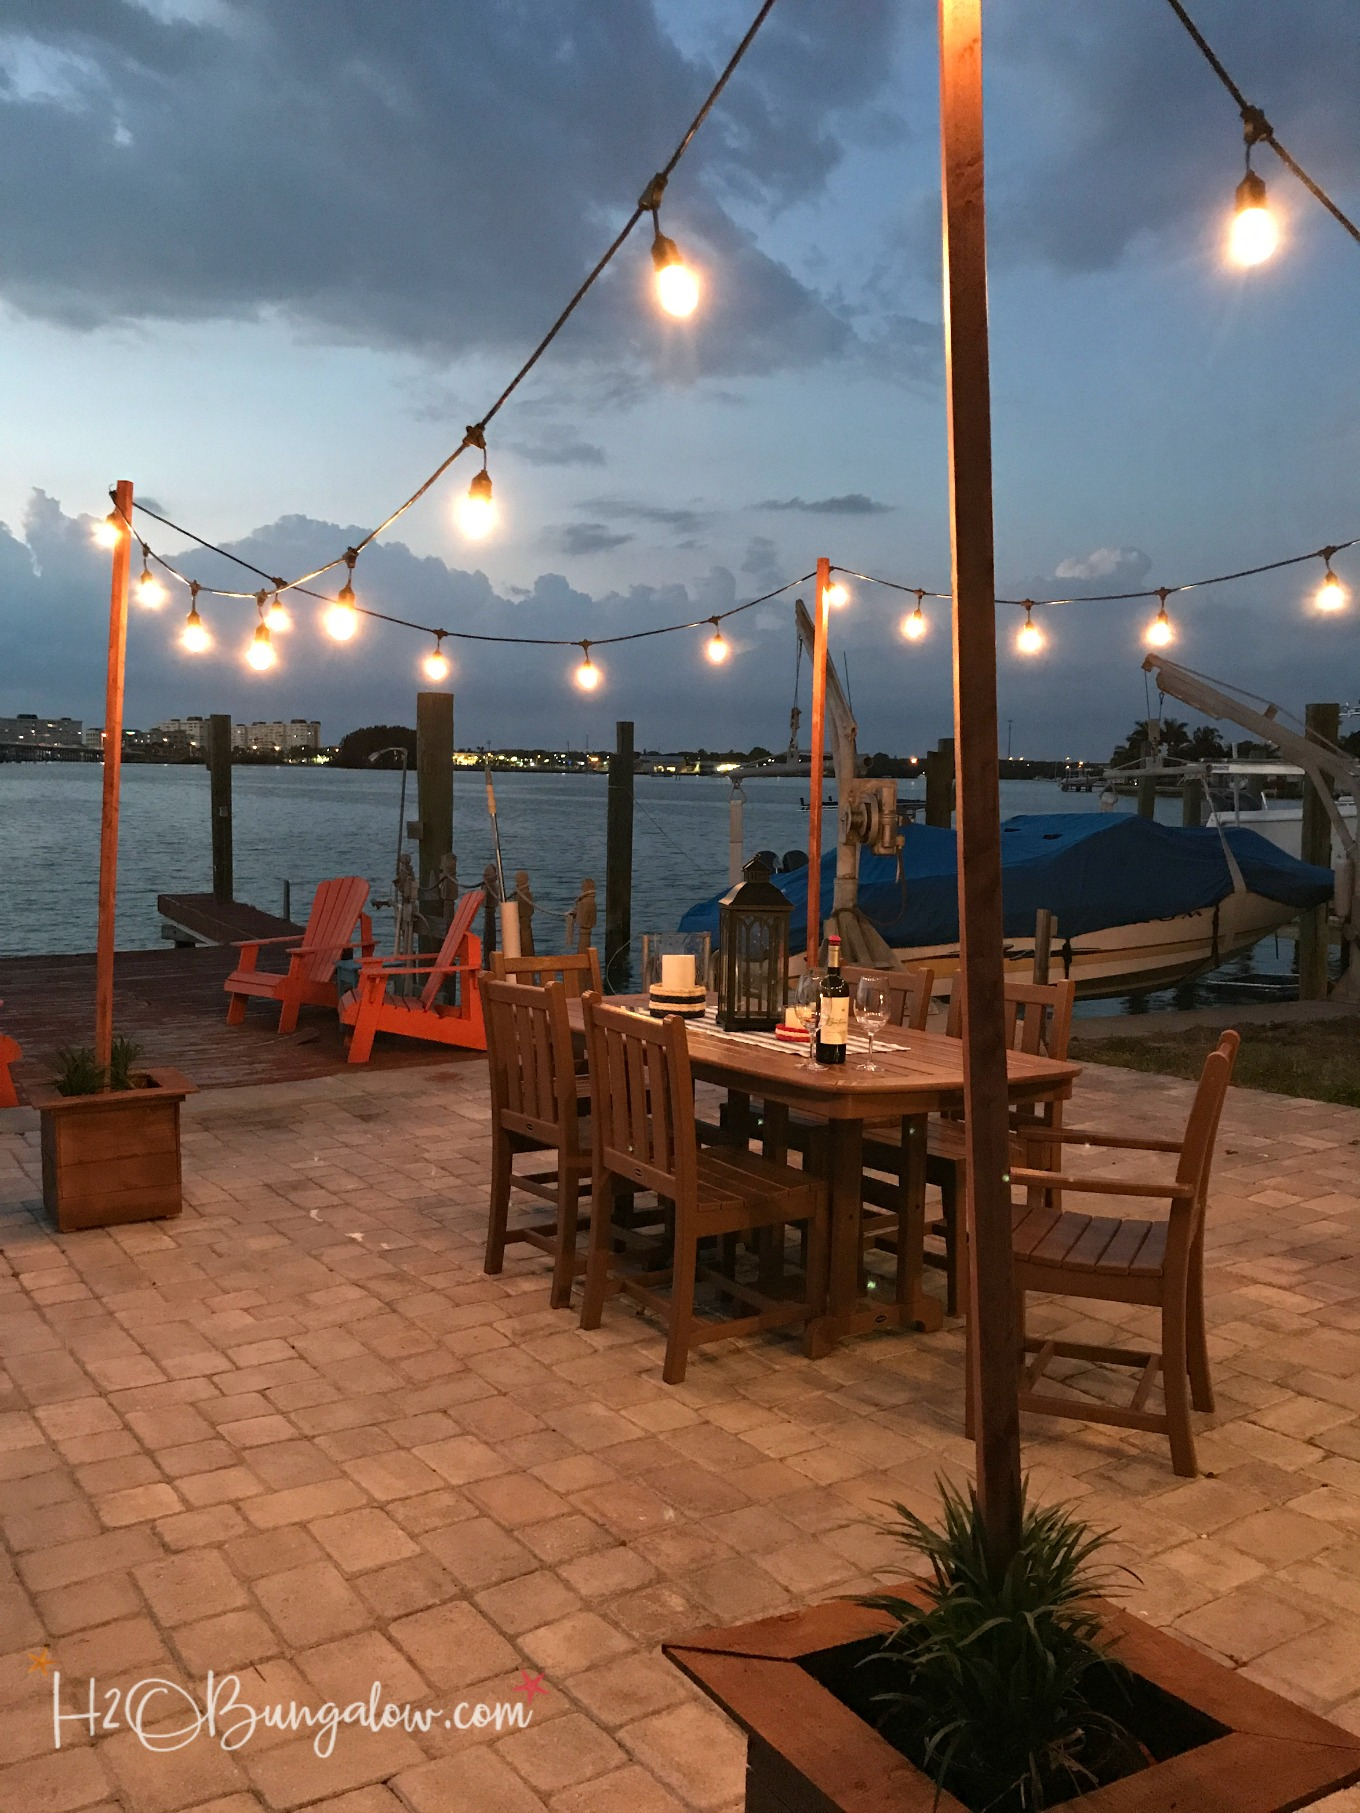 Diy Outdoor String Lights On Poles H2obungalow within Backyard String Lights Ideas